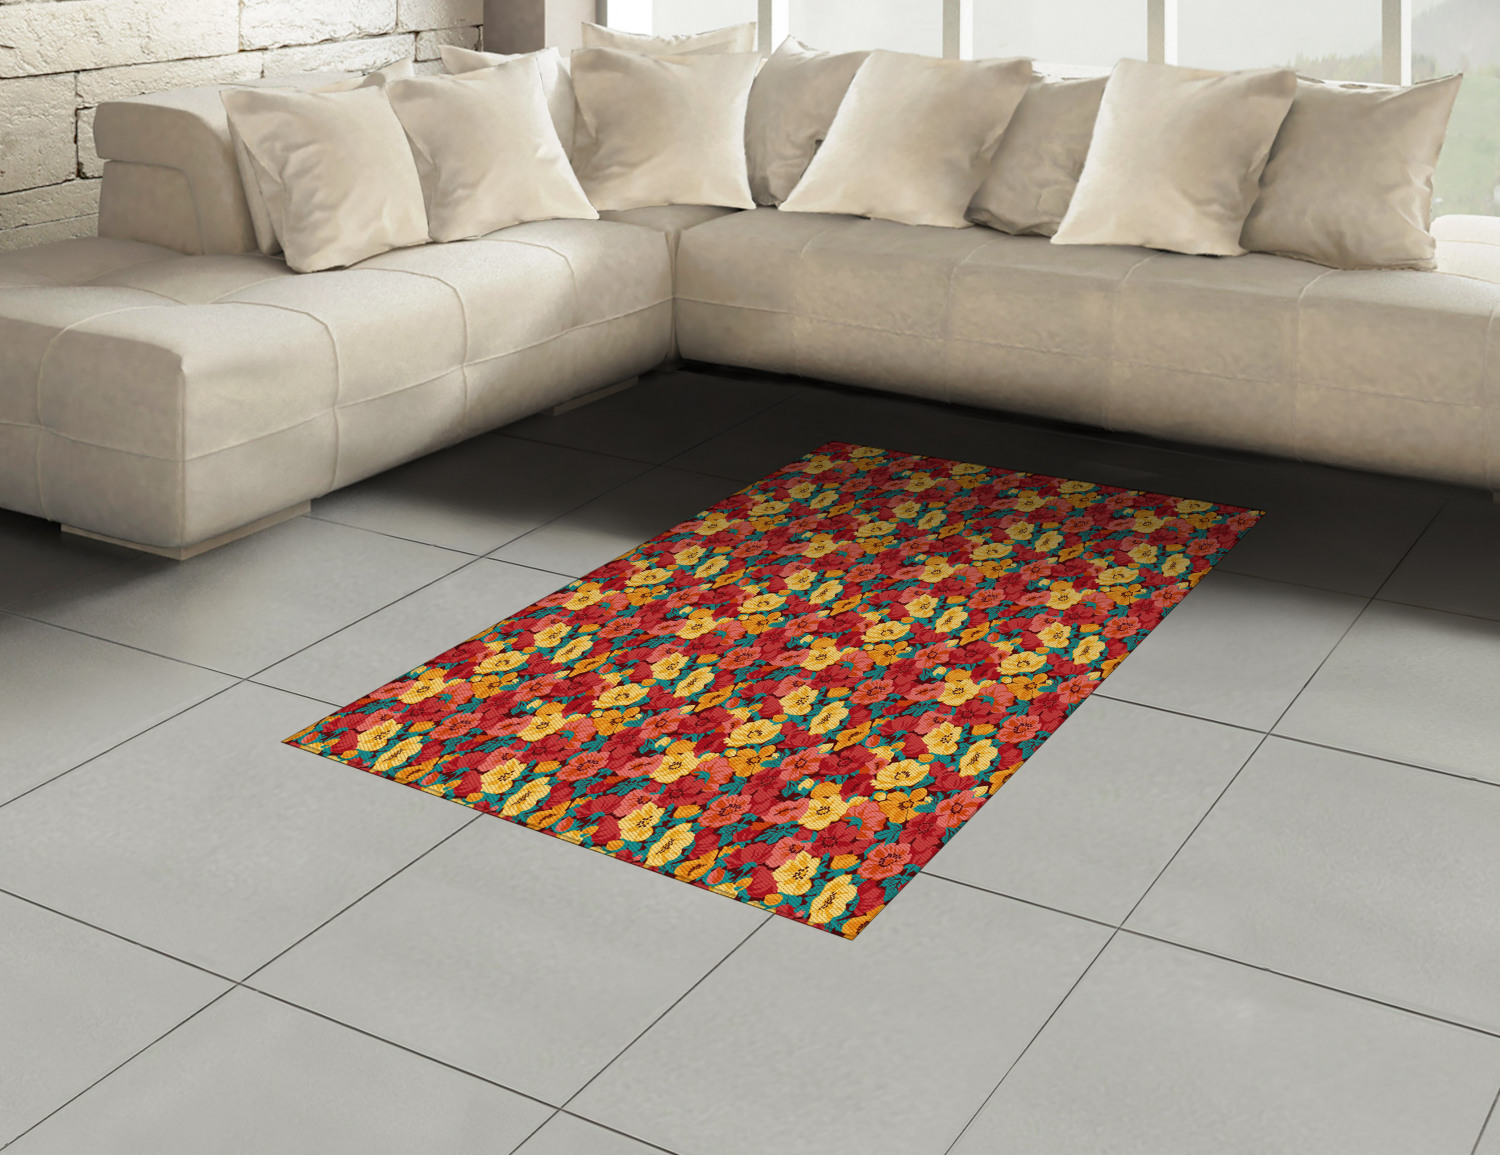 Anemone-Flower-Area-Rug-Decor-Flat-Woven-Accent-Rug-Home-Decor-2-Sizes-Ambesonne thumbnail 40